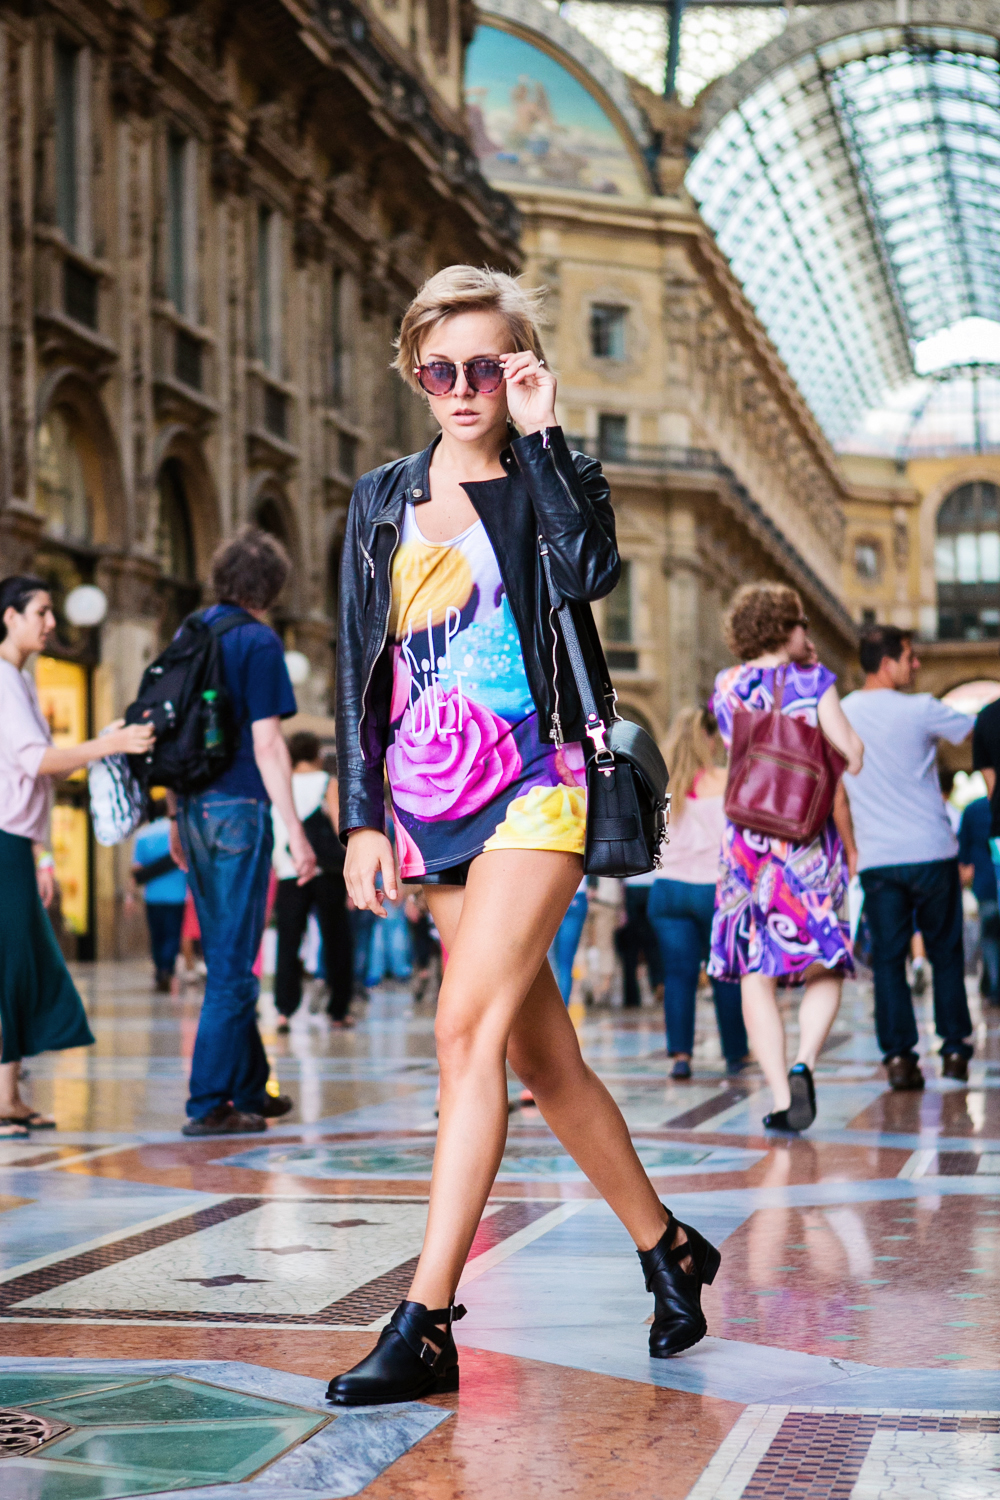 darya kamalova thecablook com fashion blog street style pixie hair cut blonde vipi creation bershka cut out boots leather shorts mr gugu top rip diet proenza schouler ps11 black bag leather jacket baldinini view friendship outfit-24 копия